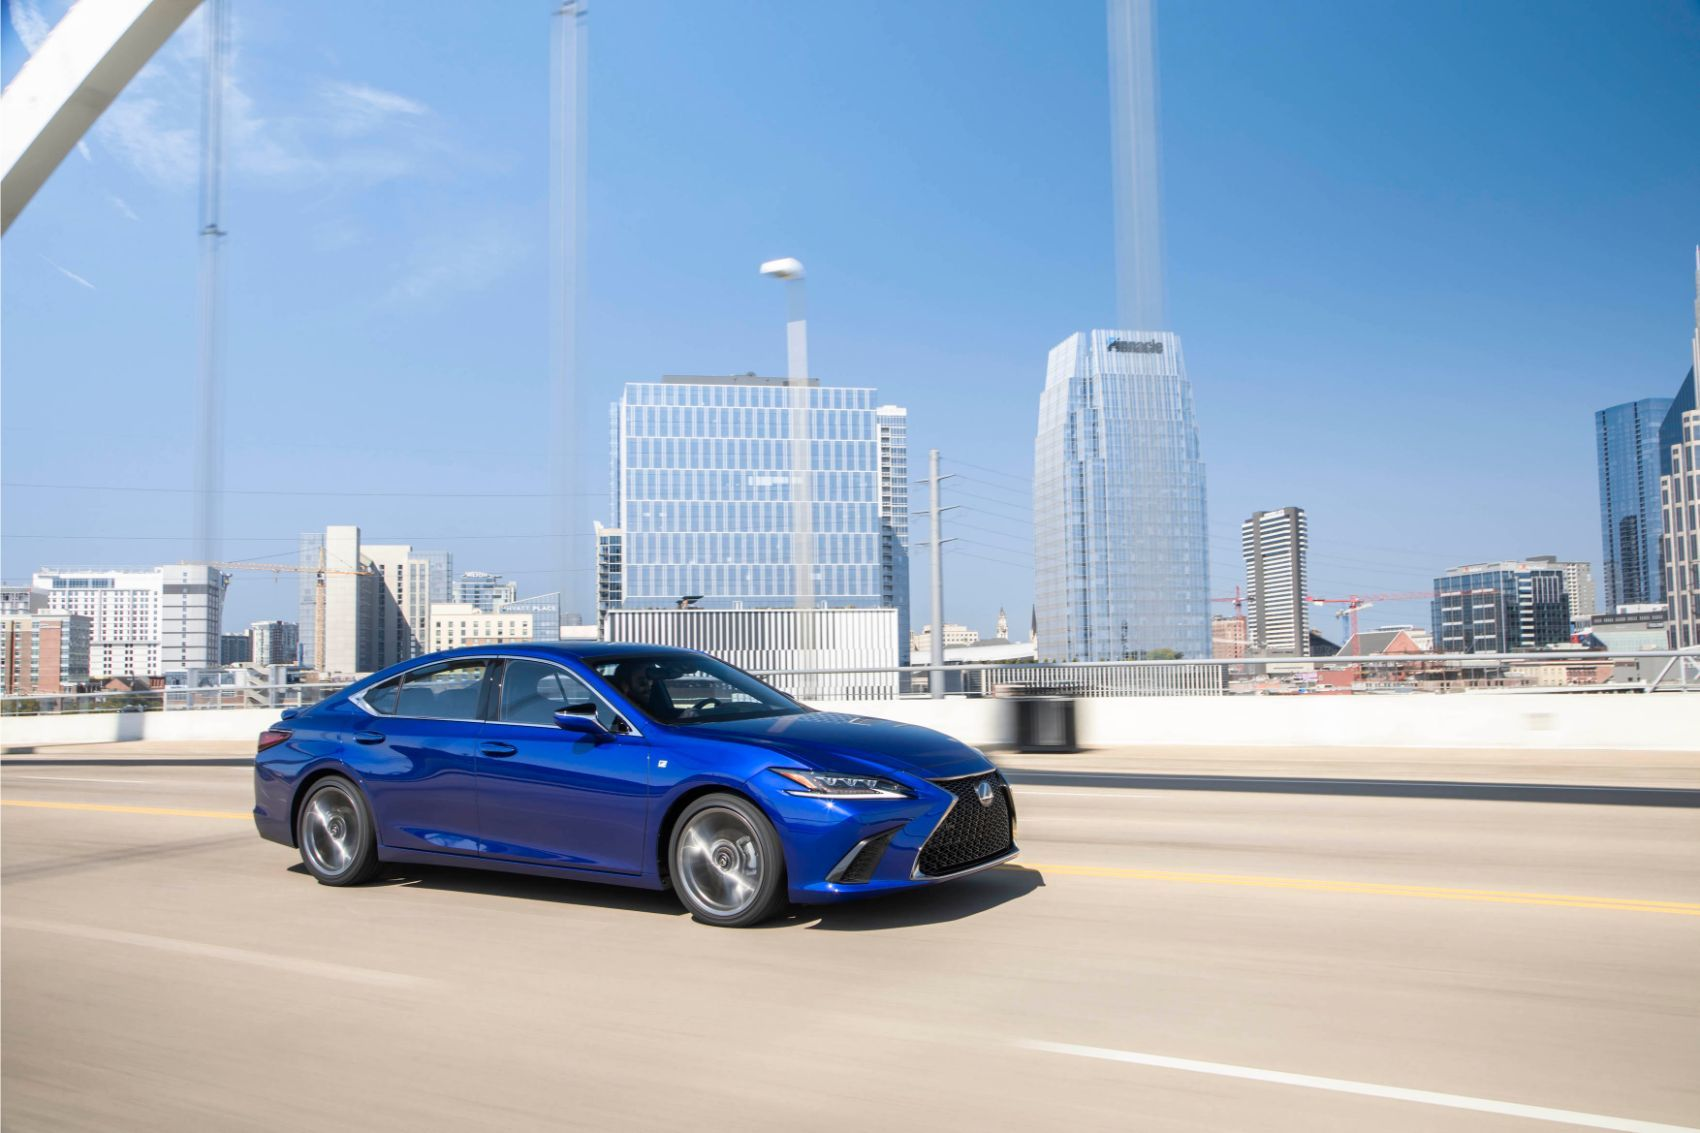 2019 Lexus ES 350 F Sport Review: Well-Balanced For The